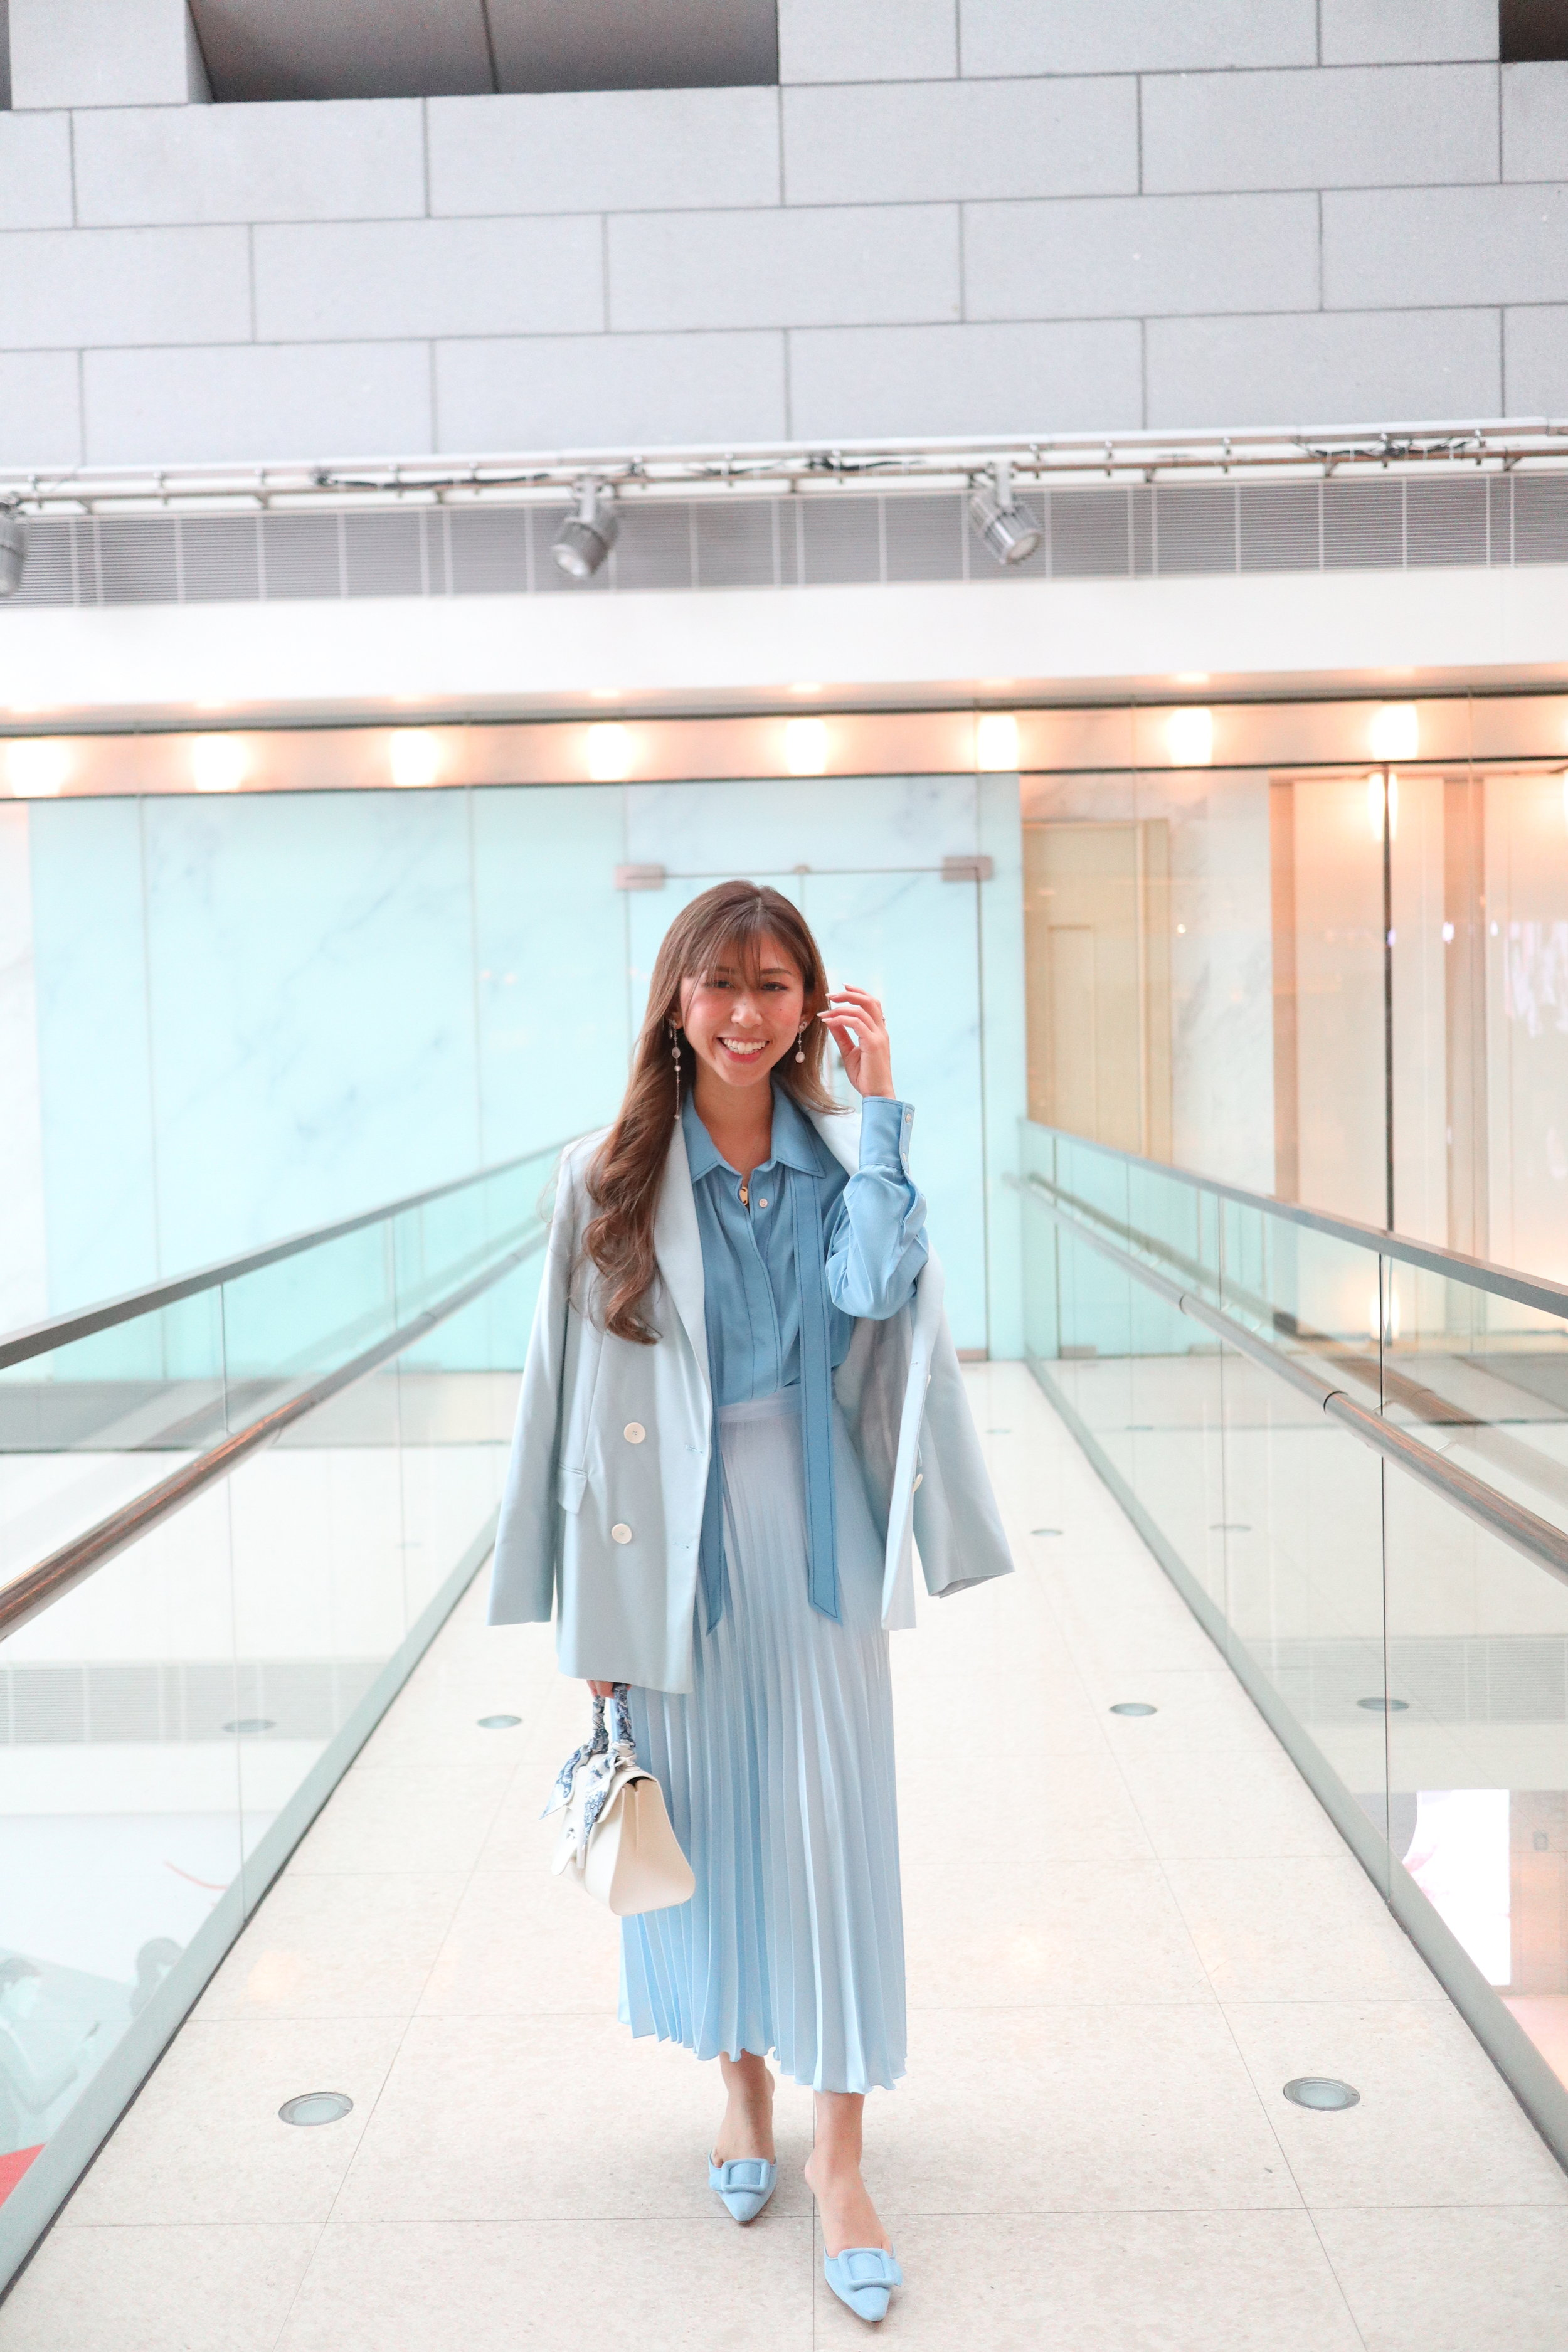 - Top: SANDRO silk shirt with pussy bow collarBottom: ZARA powder blue pleated skirtBlazer: Zara sky blue double breasted jacketBag: Delvaux ivory brillant miniShoes: MANOLO BLAHNIK maysale 50 suede